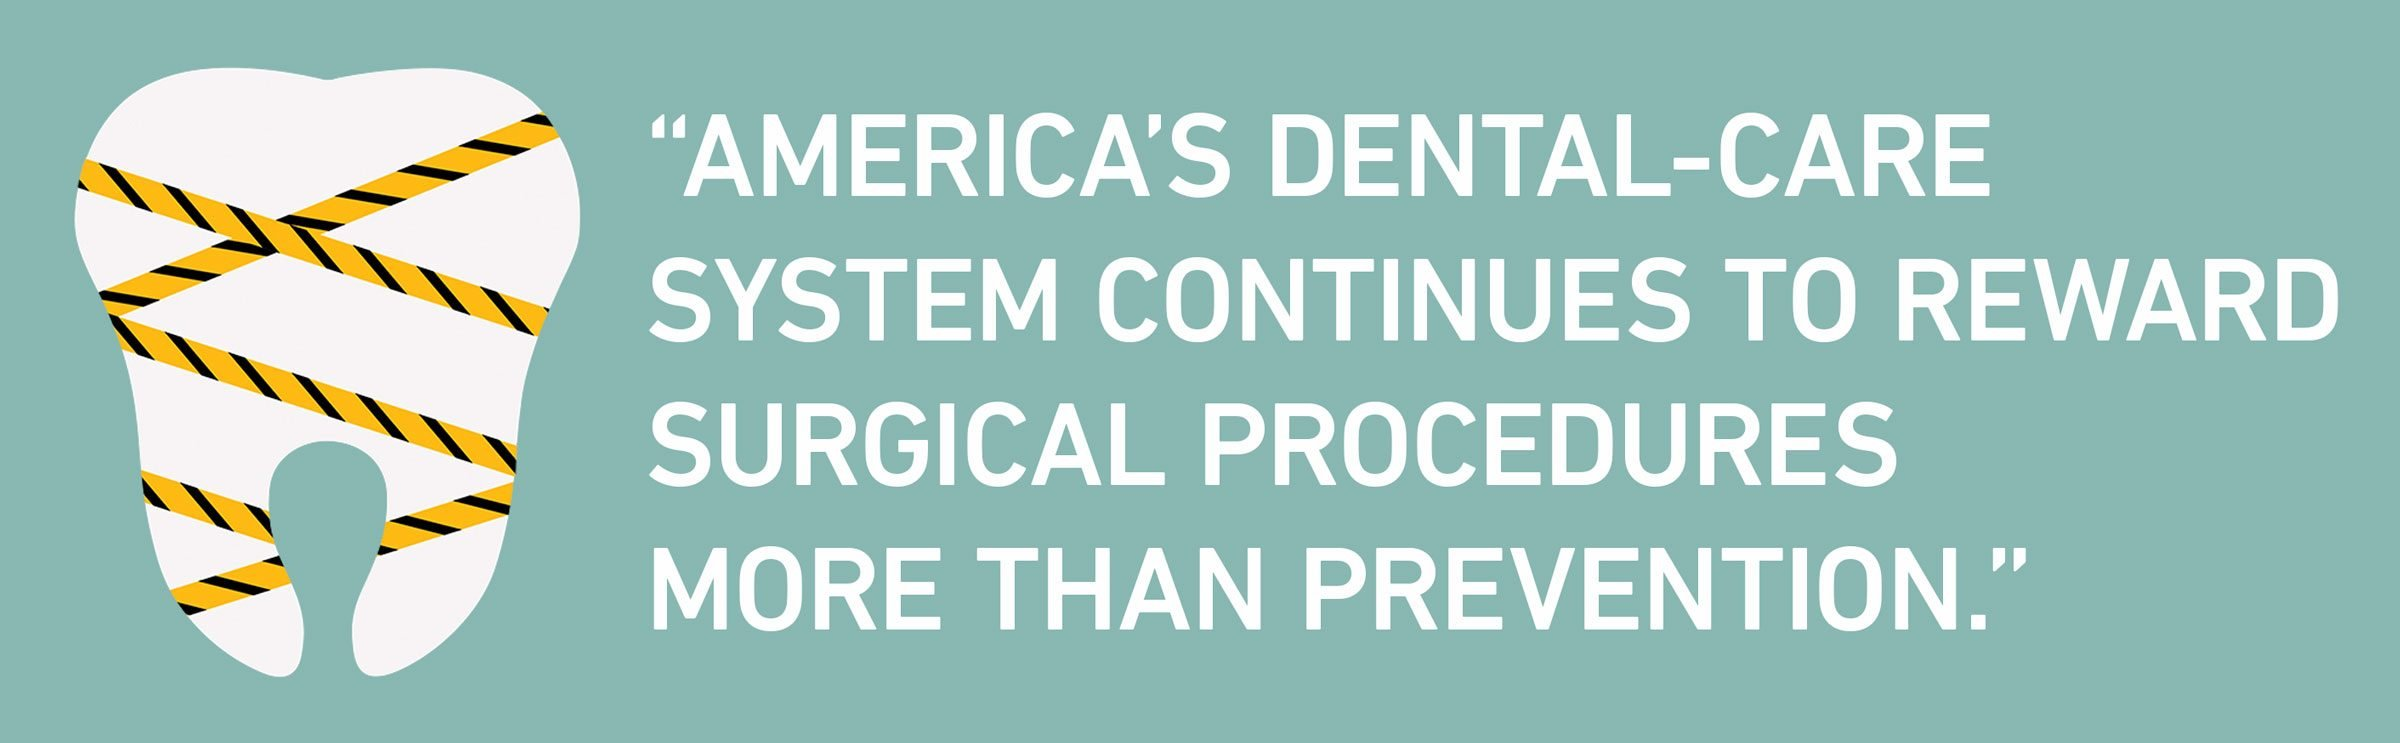 """text: """"America's dental-care system continues to reward surgical procedures more than prevention."""""""